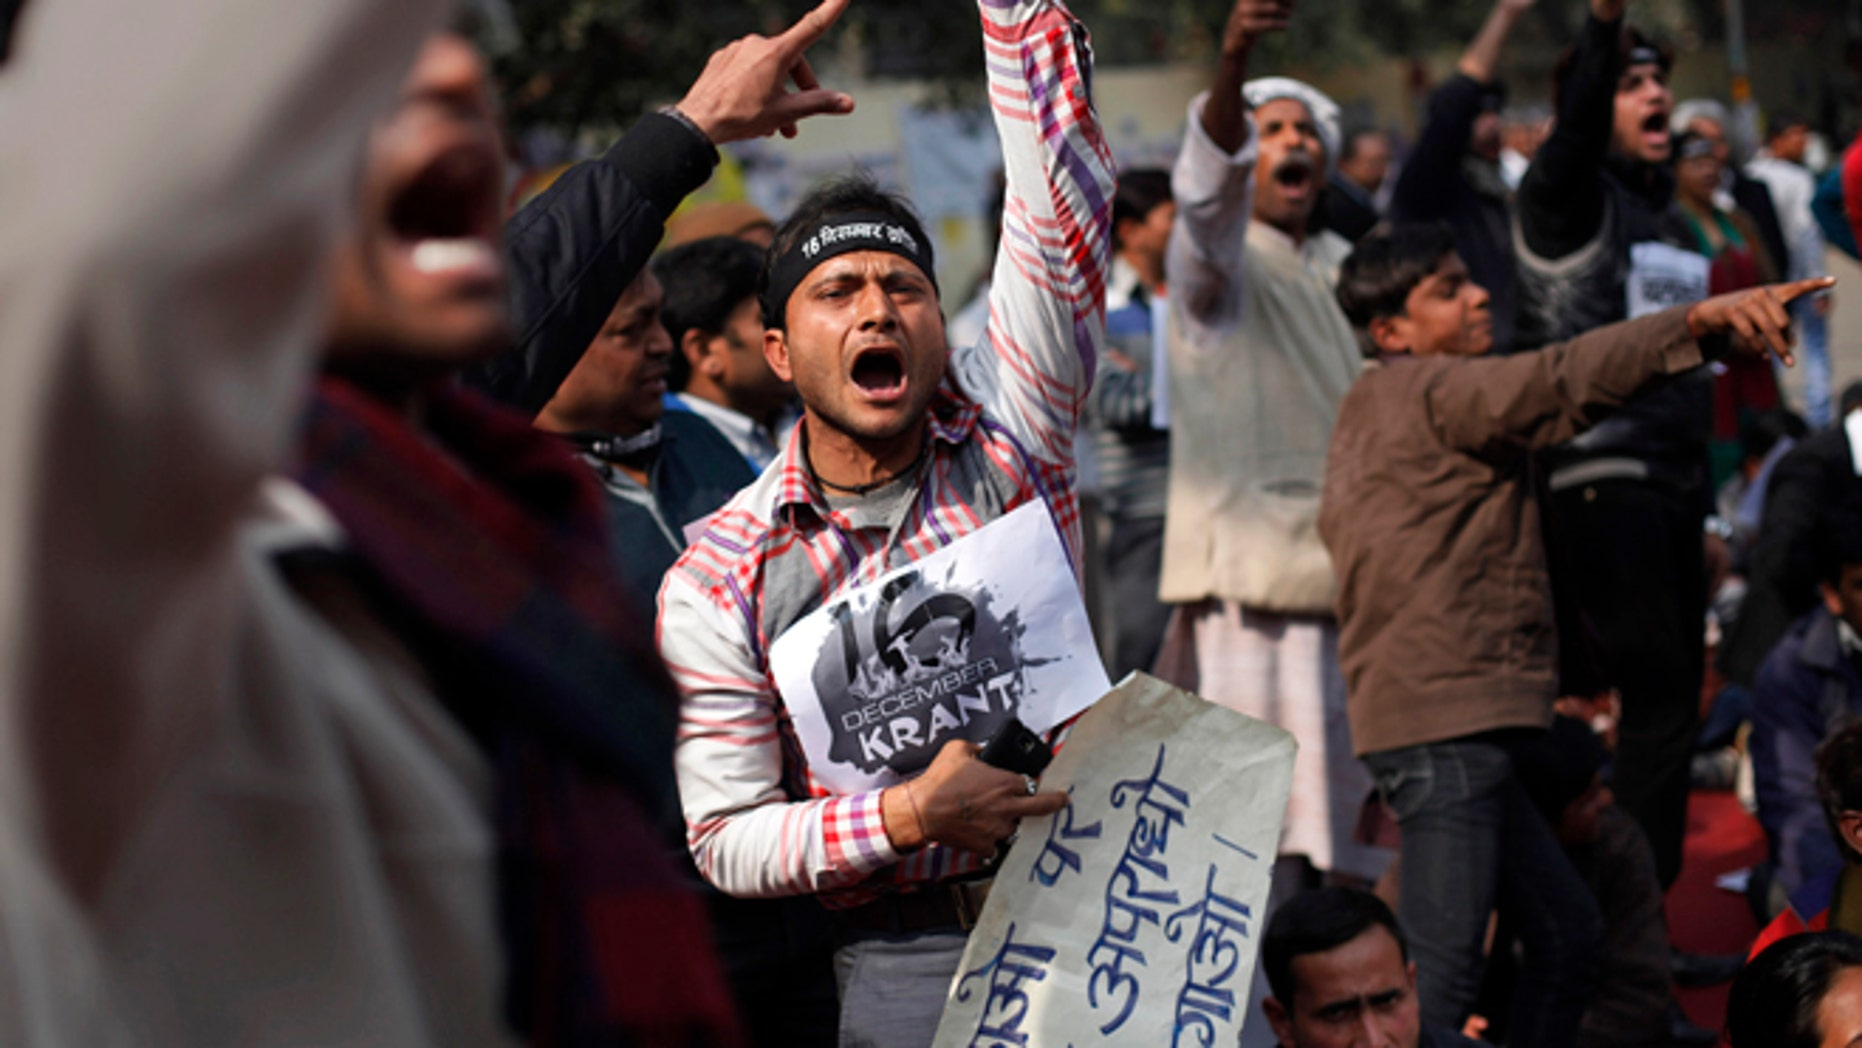 Jan. 29: Indians shout slogans during a protest demanding the death penalty for six men accused of the fatal gang rape of a young woman in New Delhi last month.